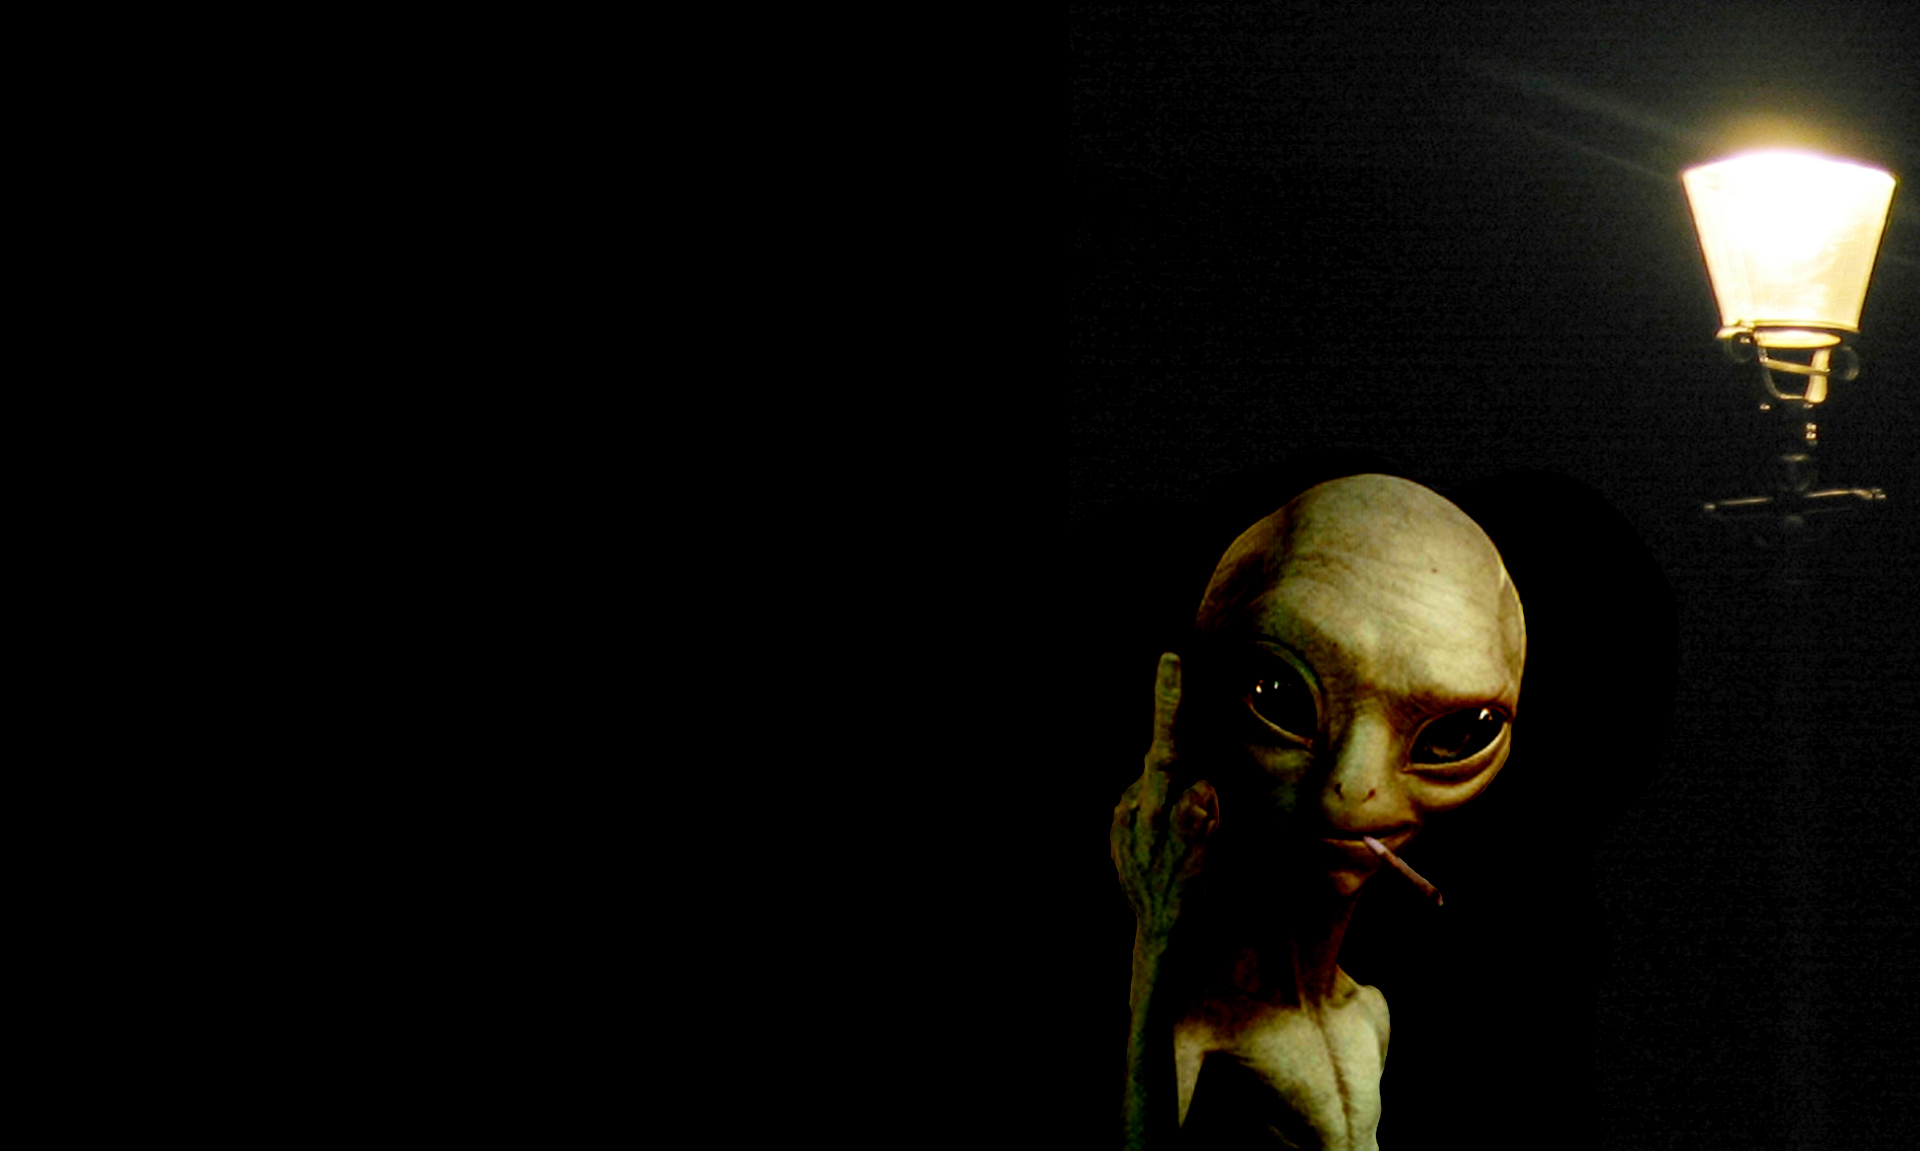 alien wallpaper 1920x1080 aspect 16 9 jpg 22245 Car Pictures 1920x1151